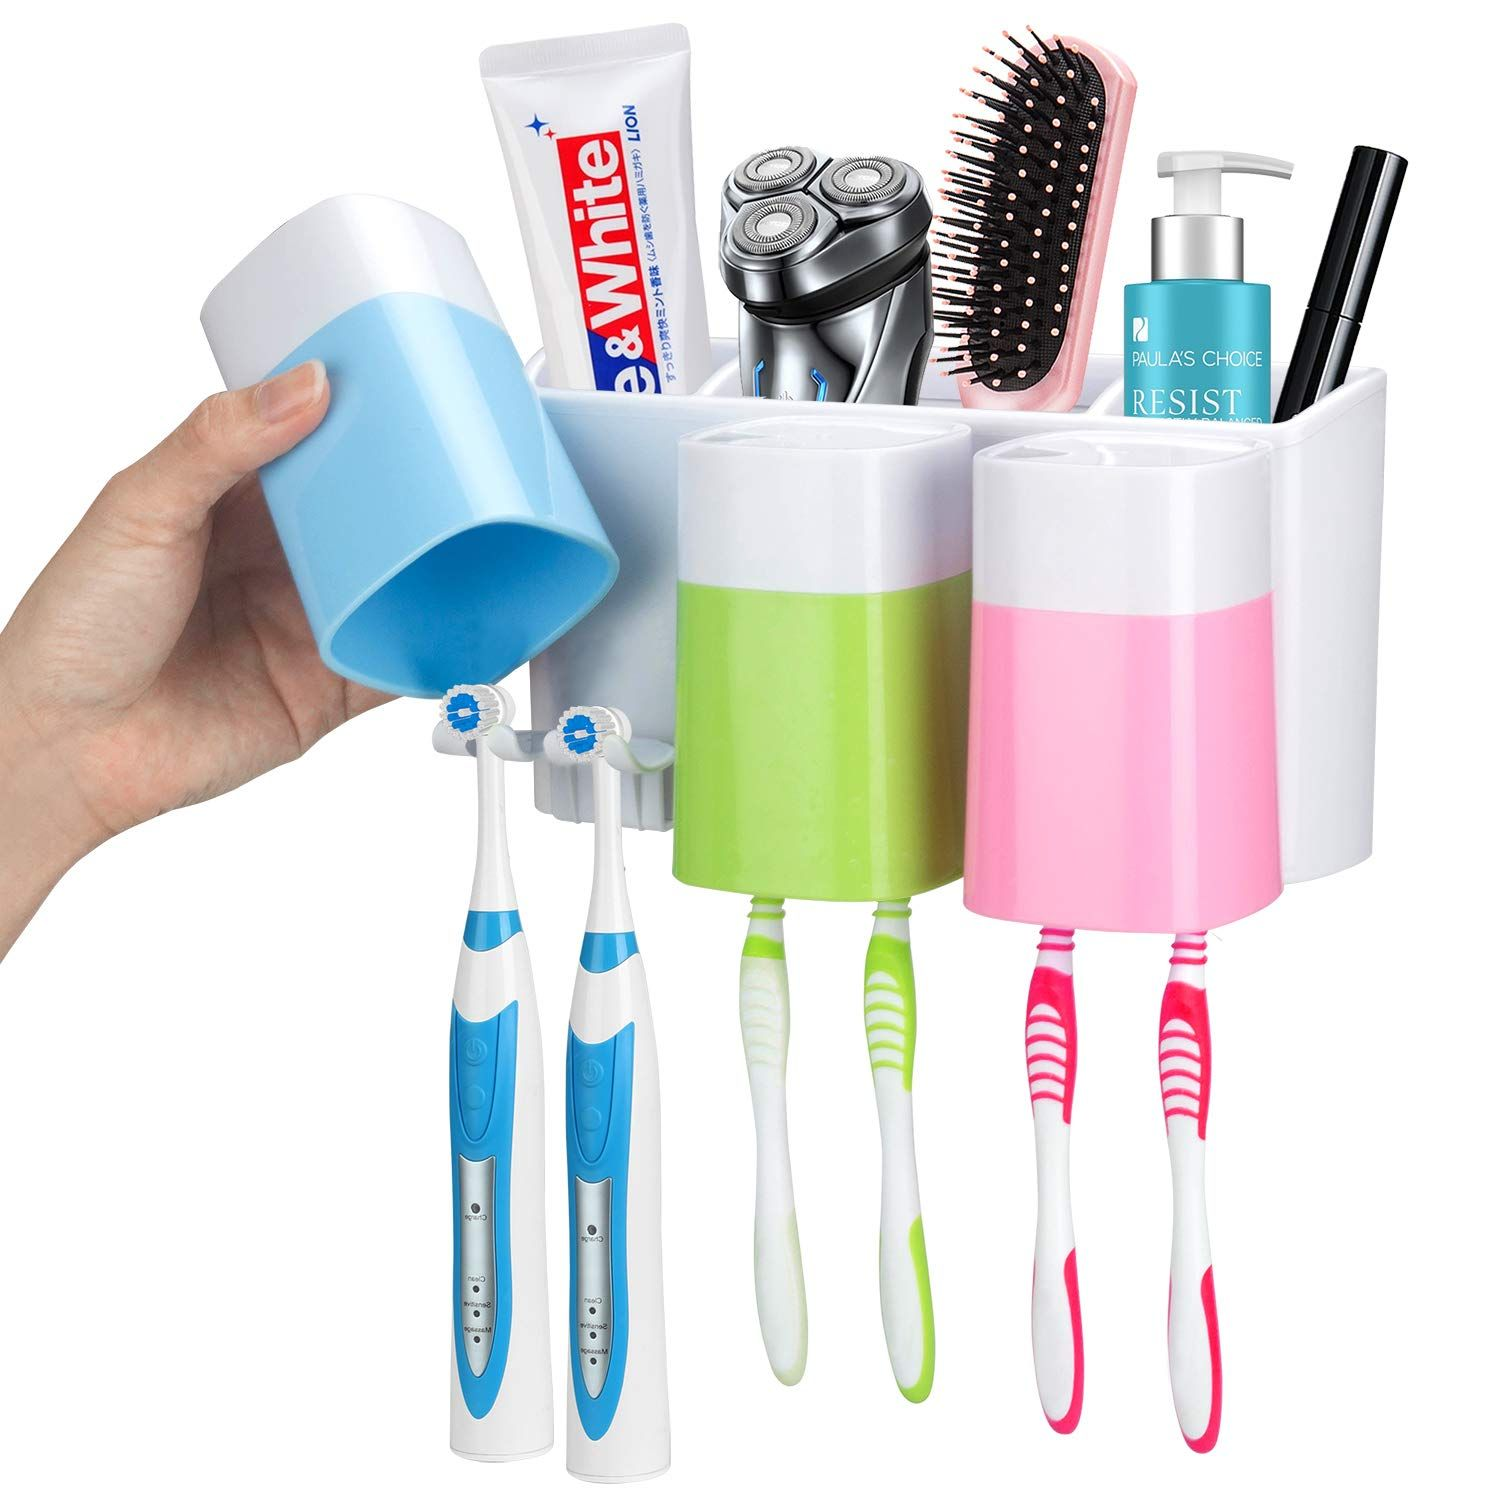 32 Organization Ideas For The Home Toothbrush Holder Wall Toothbrush Storage Electric Toothbrush Holder